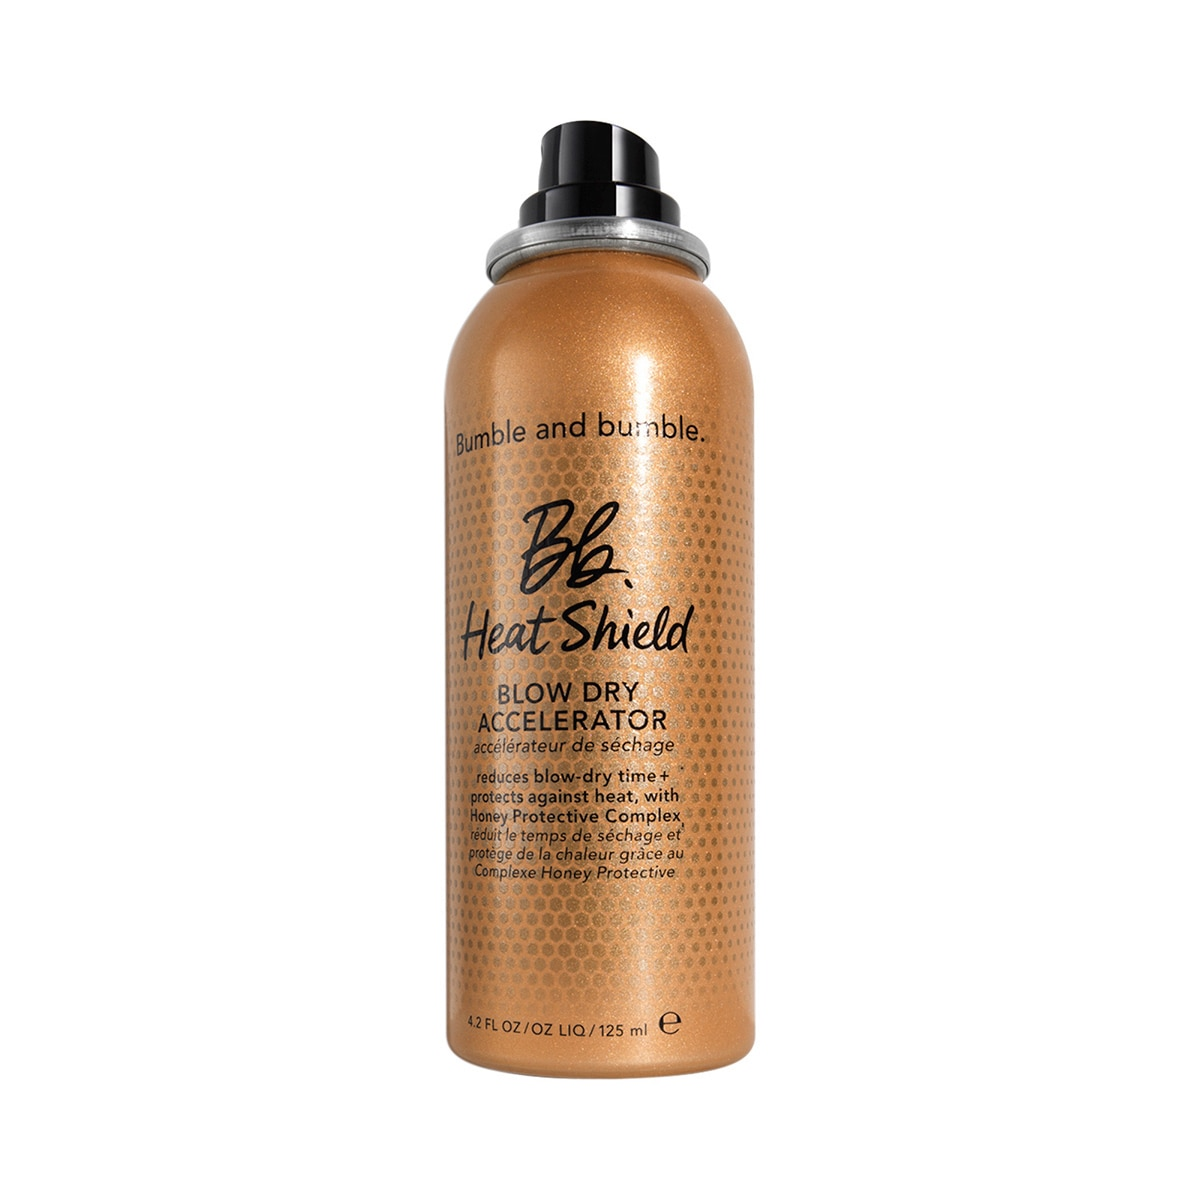 HEAT SHIELD BLOW-DRY ACCELERATOR (SPRAY ACELERADOR DE SECADO)